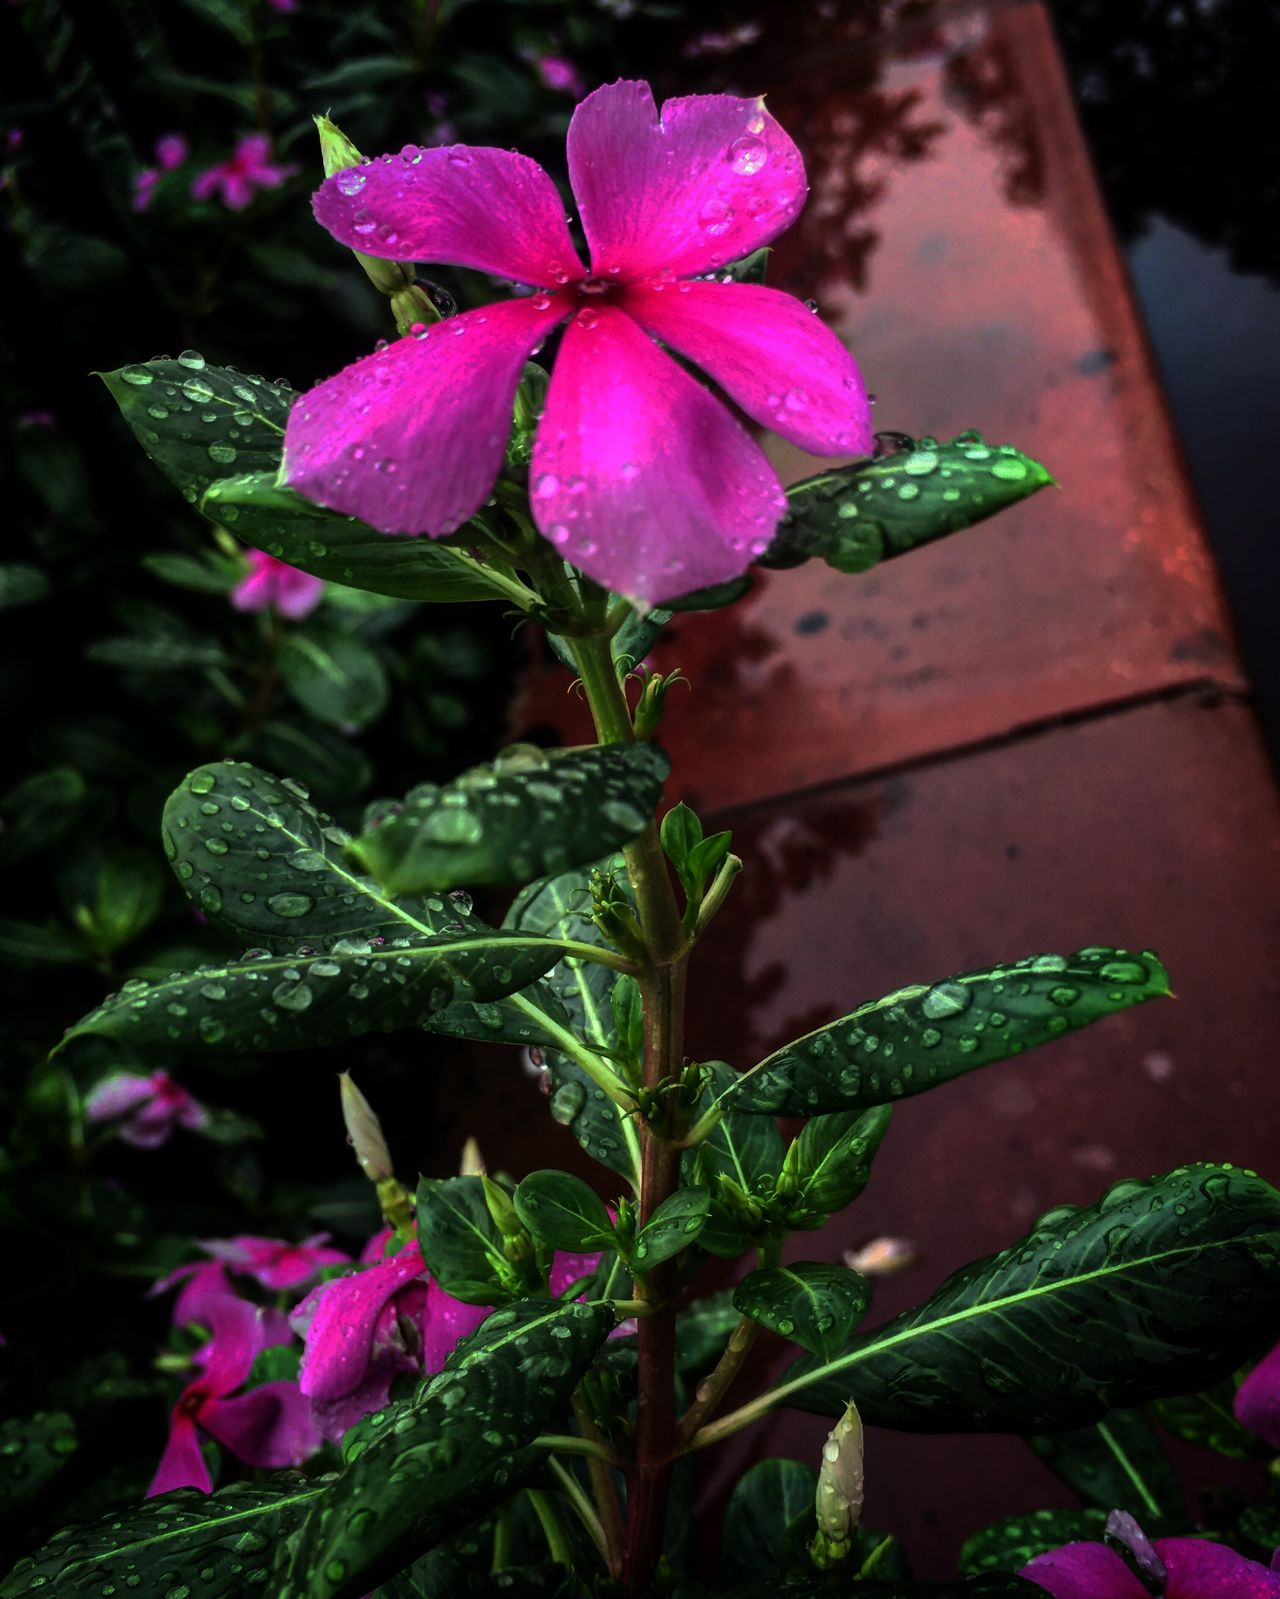 Flowers flourish with the droplet of the rain Rejoice. Happy